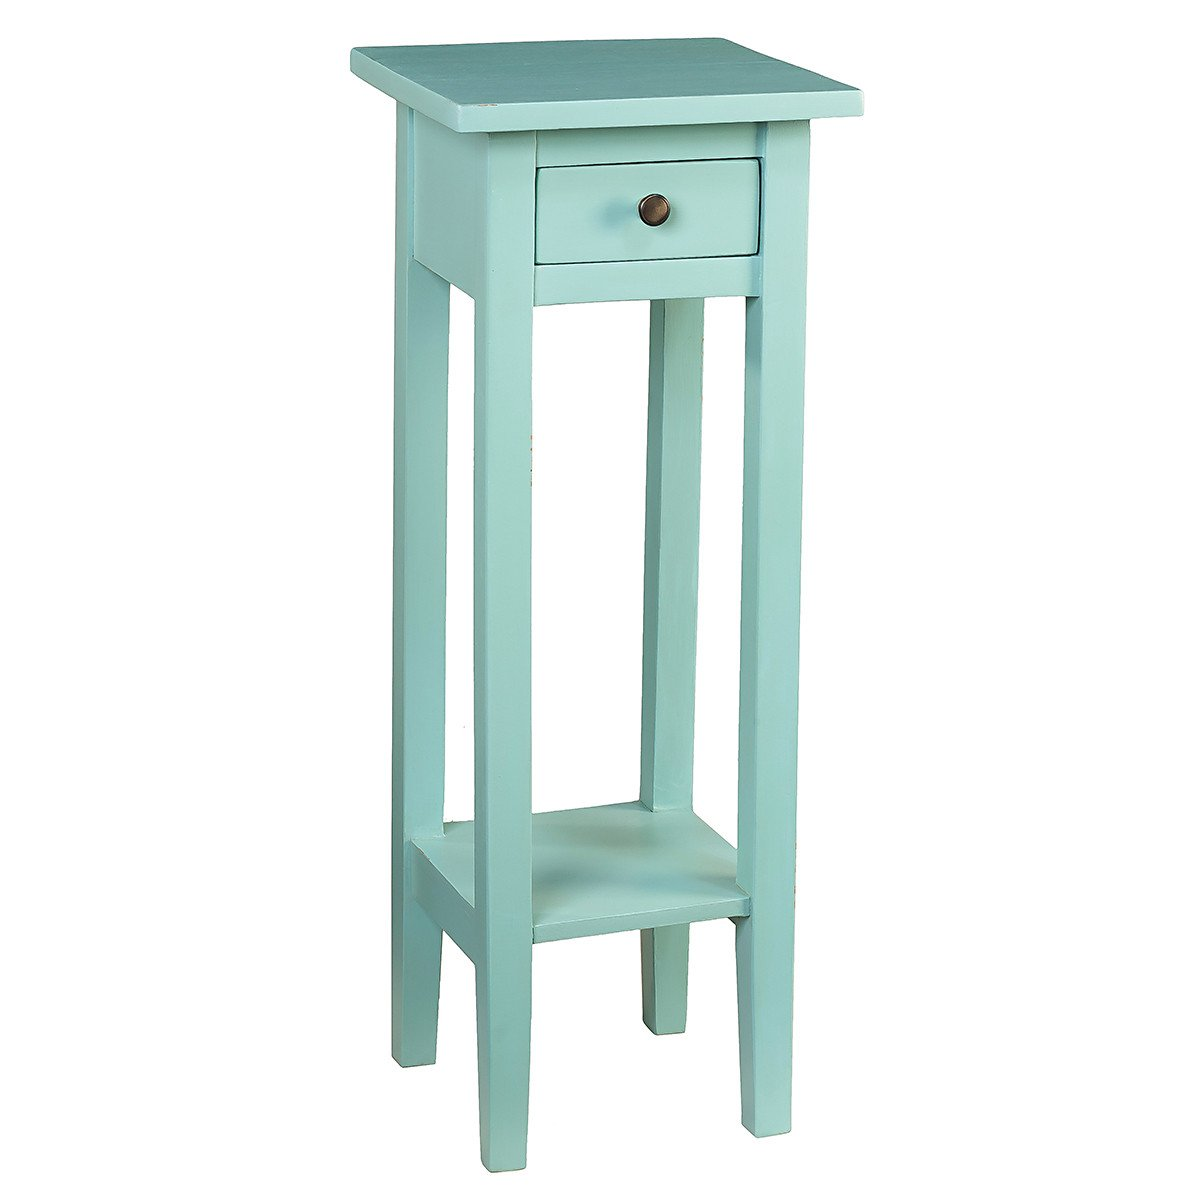 sumatra pedestal table serenity blue wrightwood furniture limpet shell fretwork accent sofa and end tables hand painted square fall tablecloth cylinder side cloth entryway patio